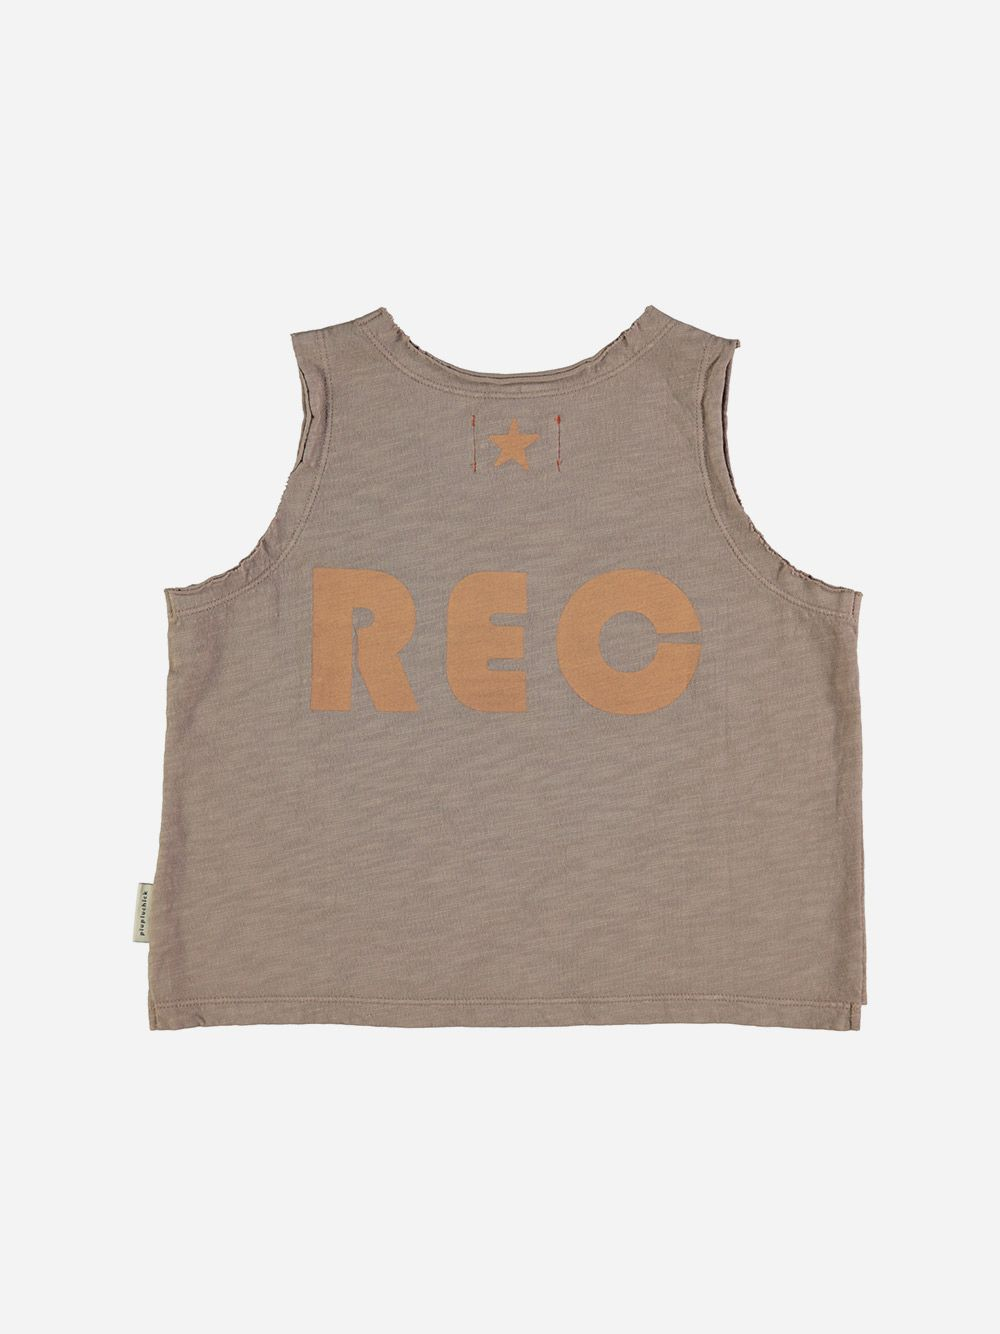 Unisex Sleeveless T-shirt Taupe with Peach